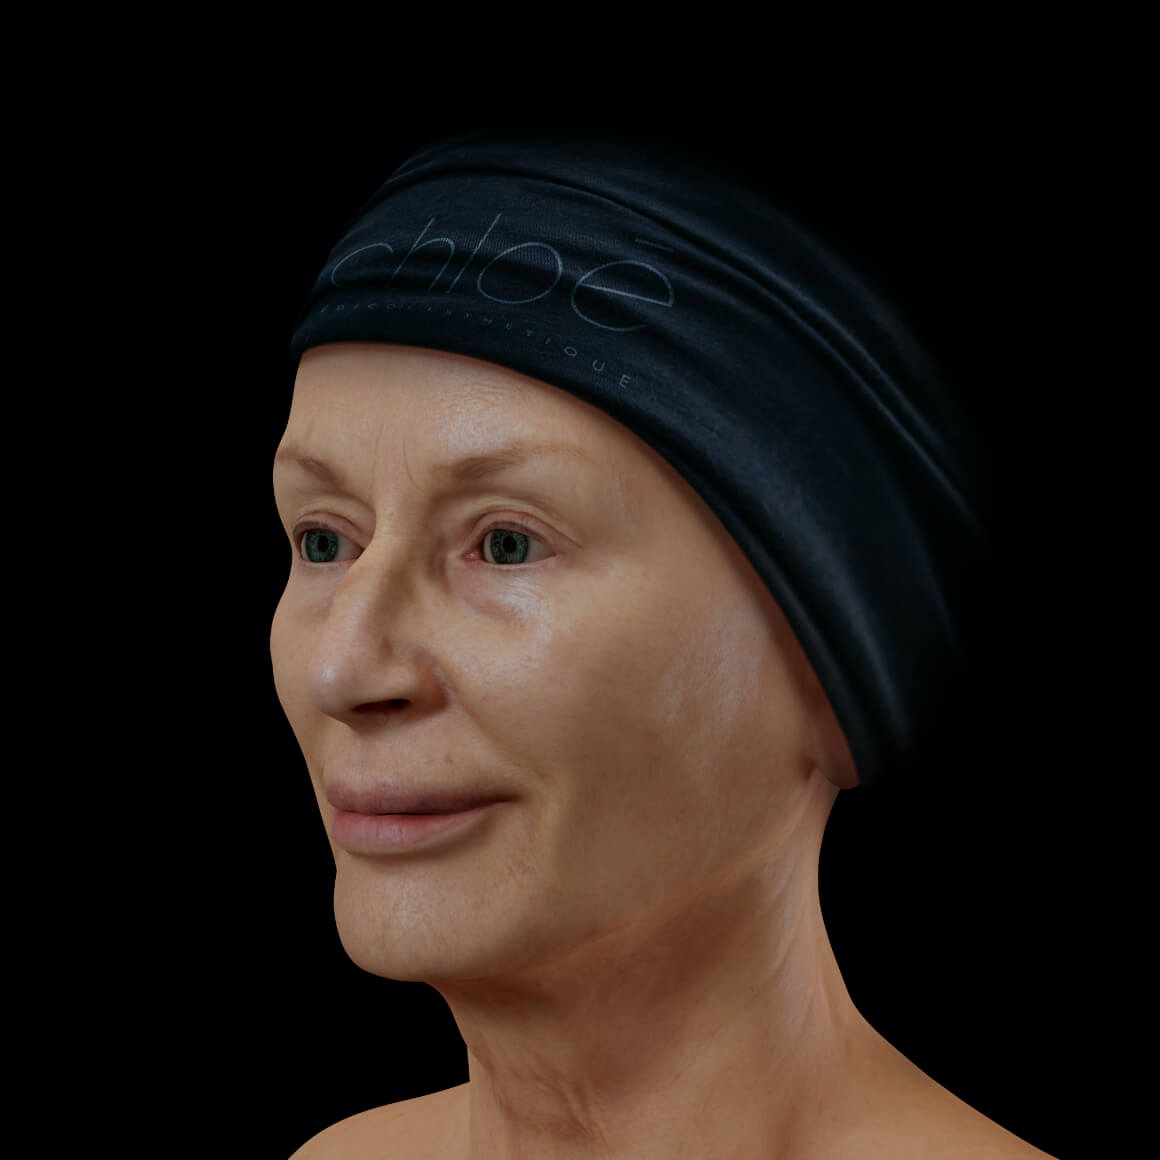 Female patient from Clinique Chloé positioned at an angle after a Profound non-surgical facelift treatment